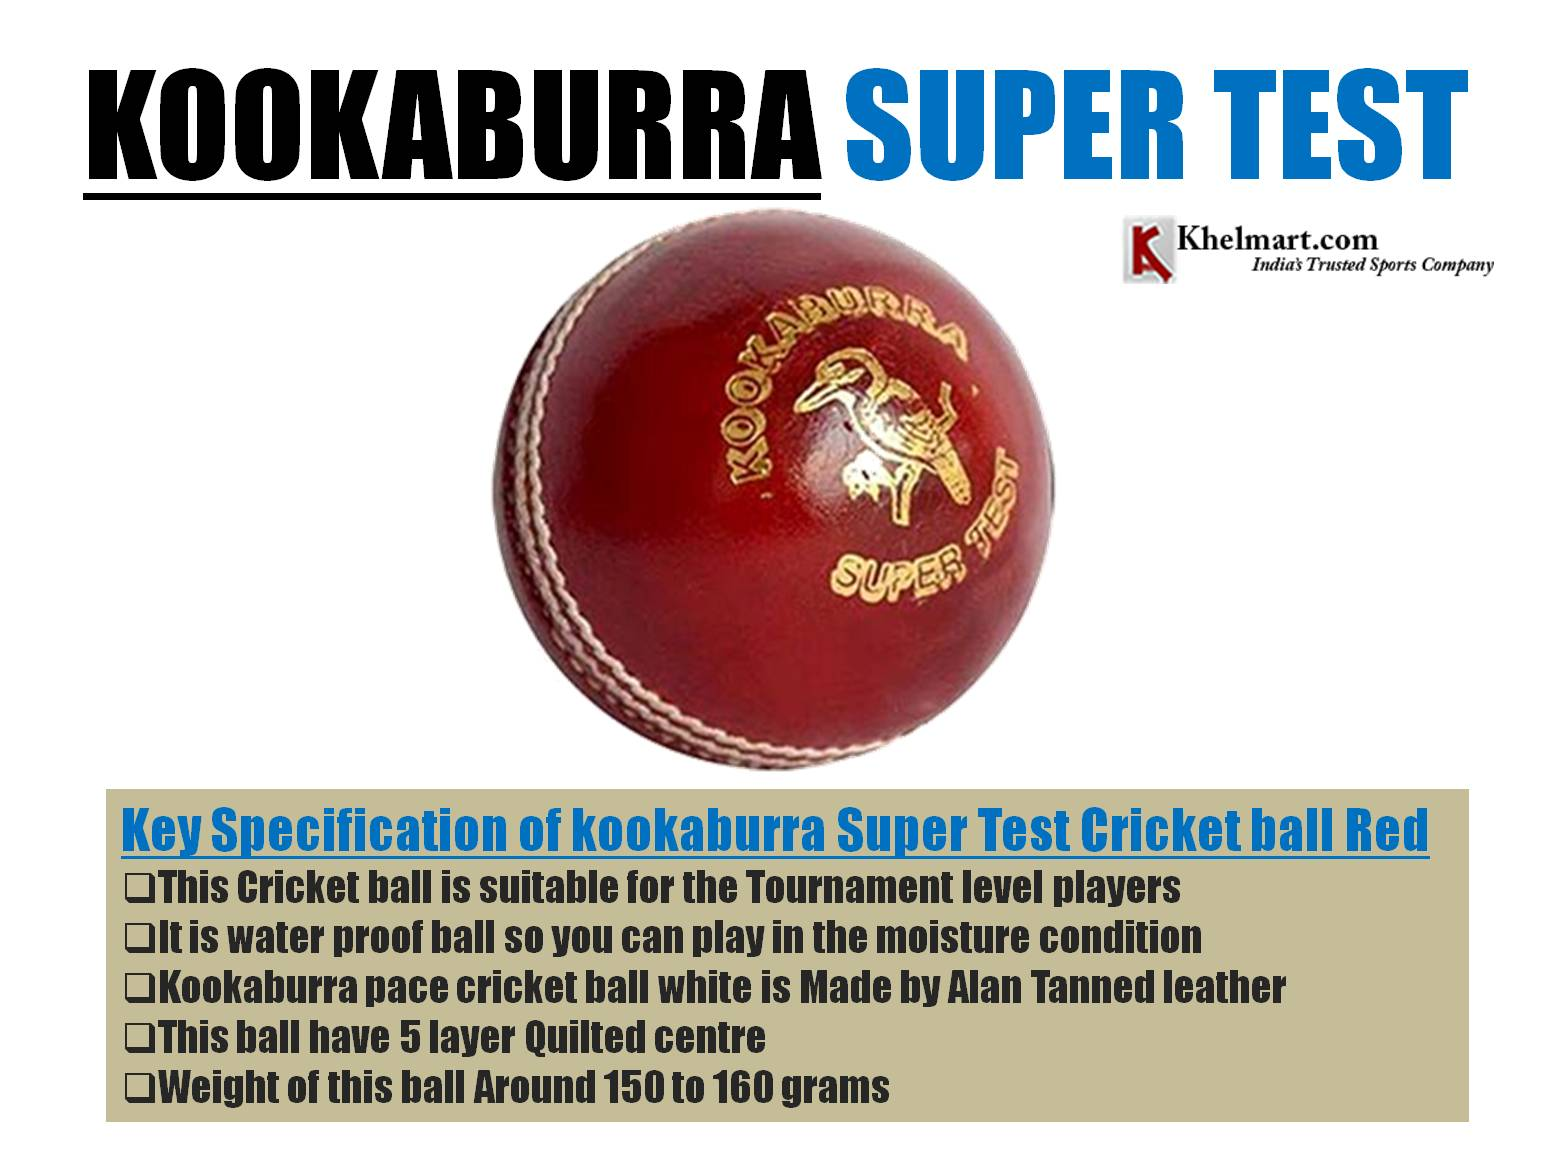 KOOKABURRA_SUPER_TEST_CRICKET_BALL